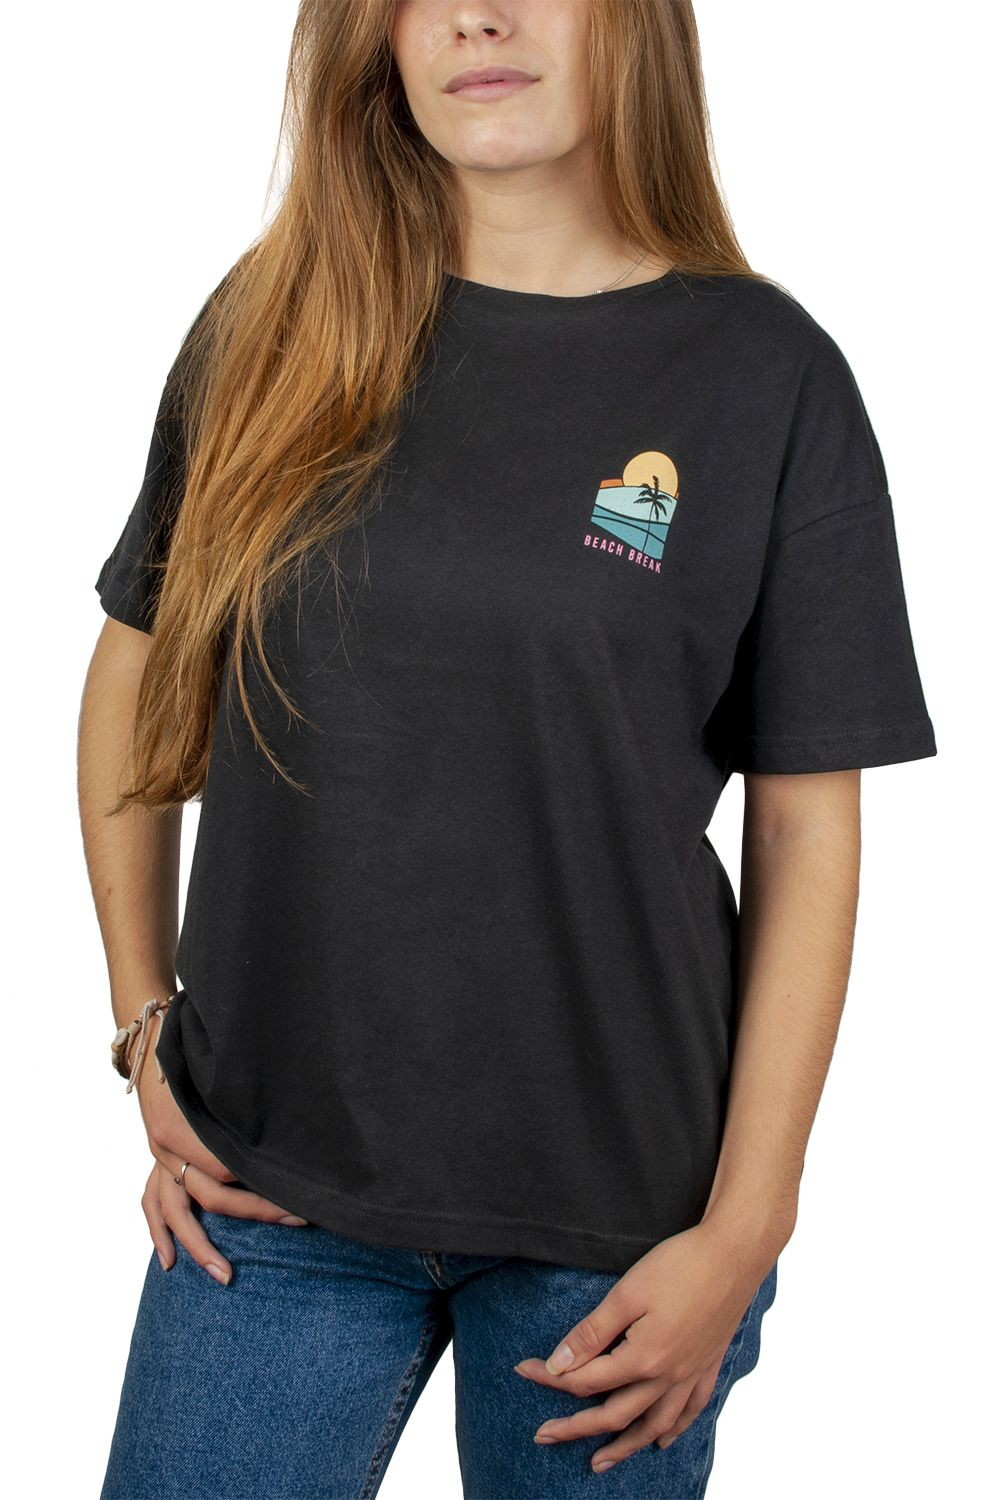 Ericeira Surf Skate T-Shirt BEACH BREAK Off Black